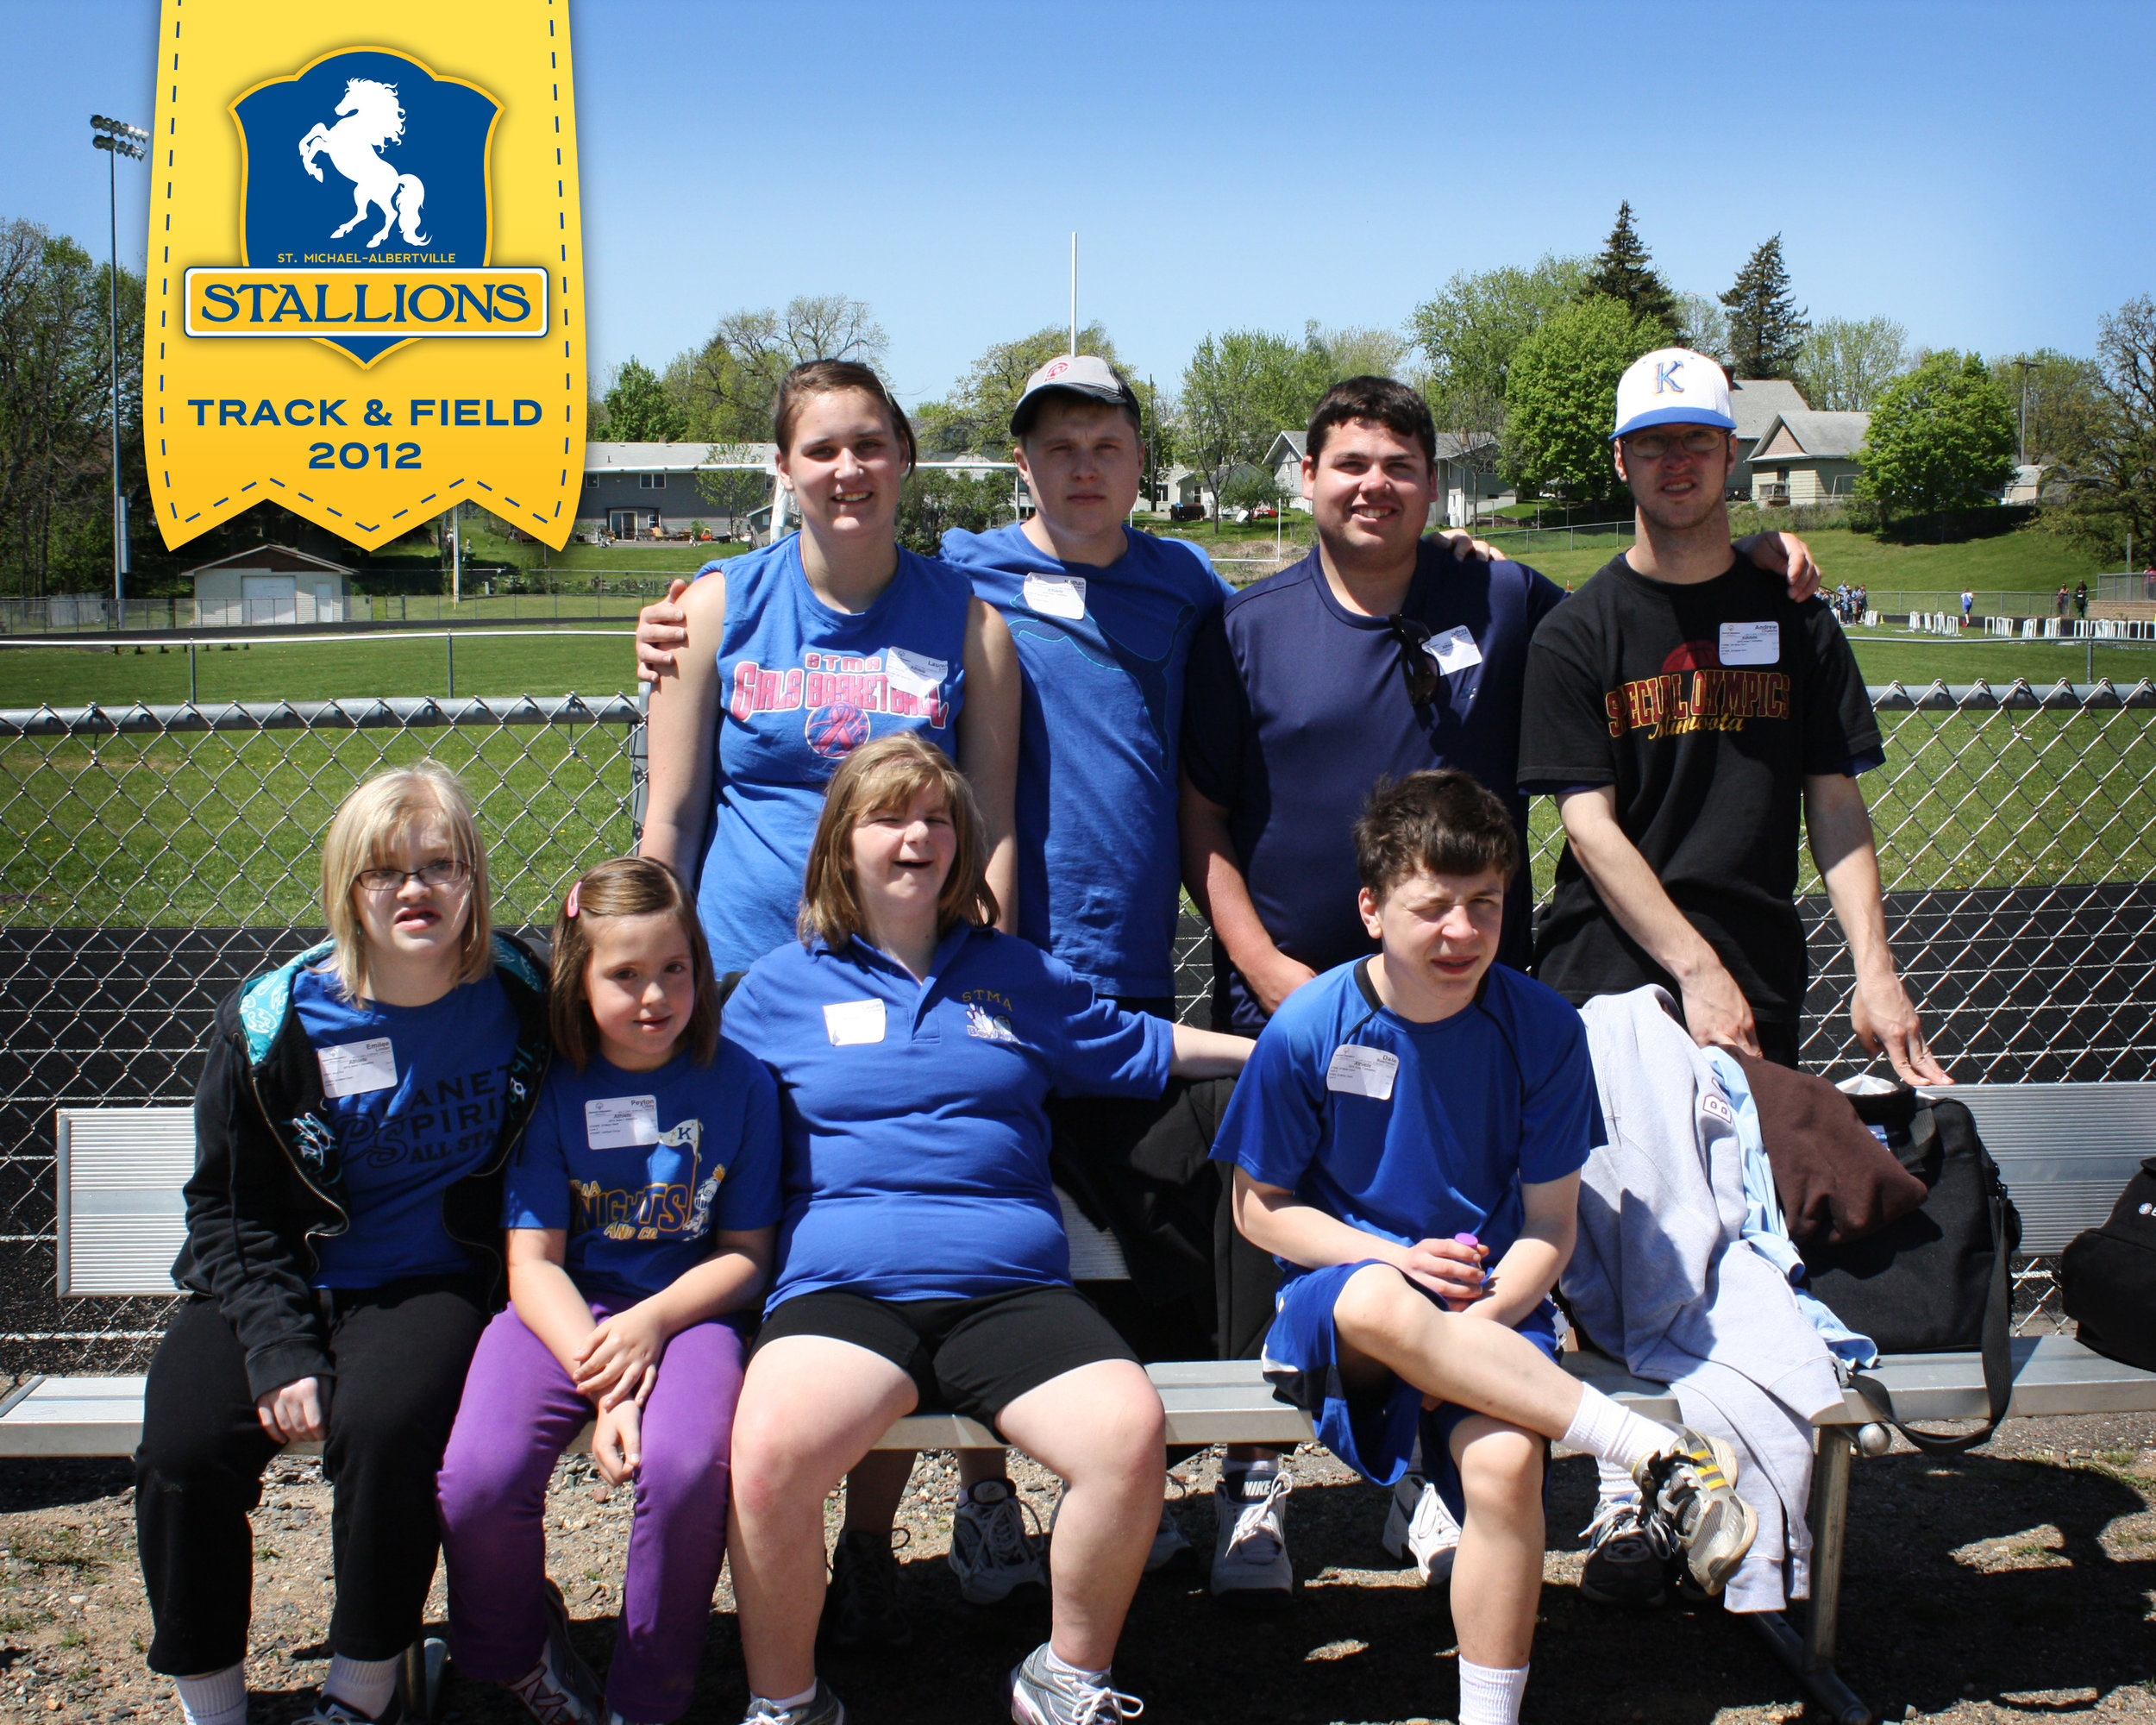 The very first Stallions group at the 2012 Area 7 Special Olympics Minnesota Track & Field meet ... my how we've grown!